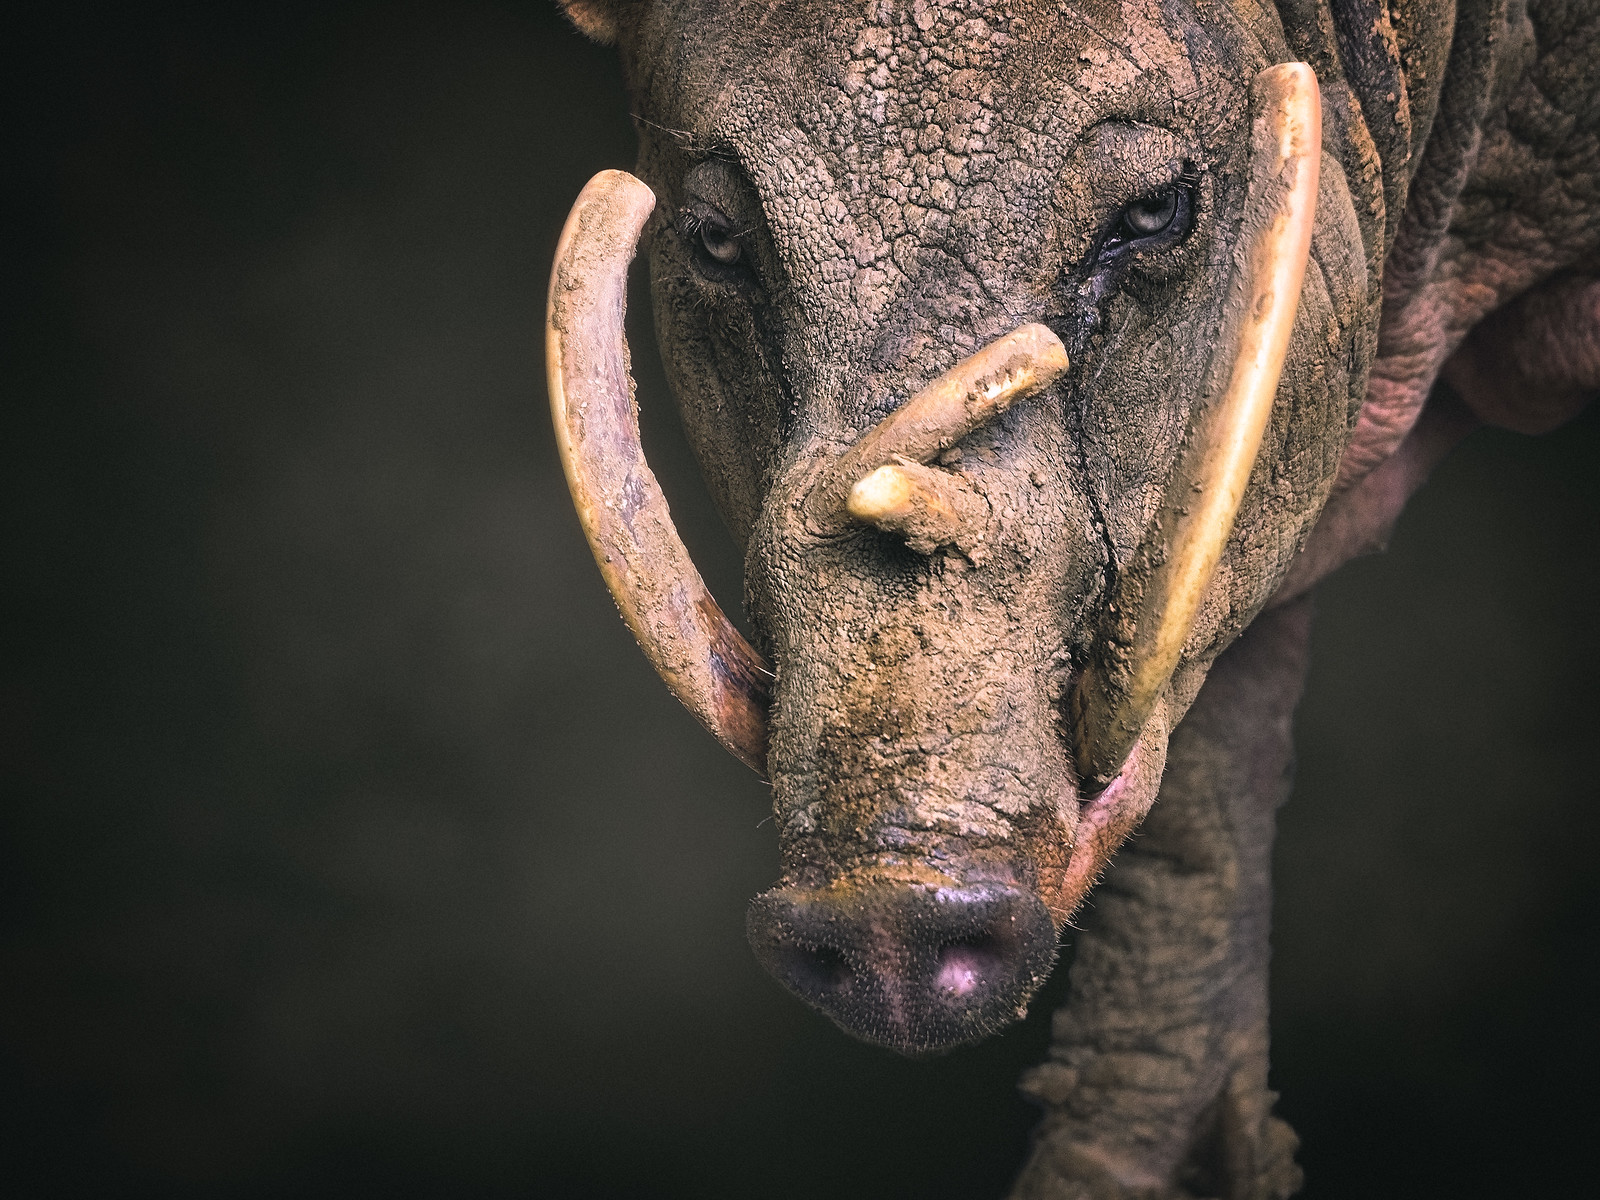 Closeup of a Babirusa